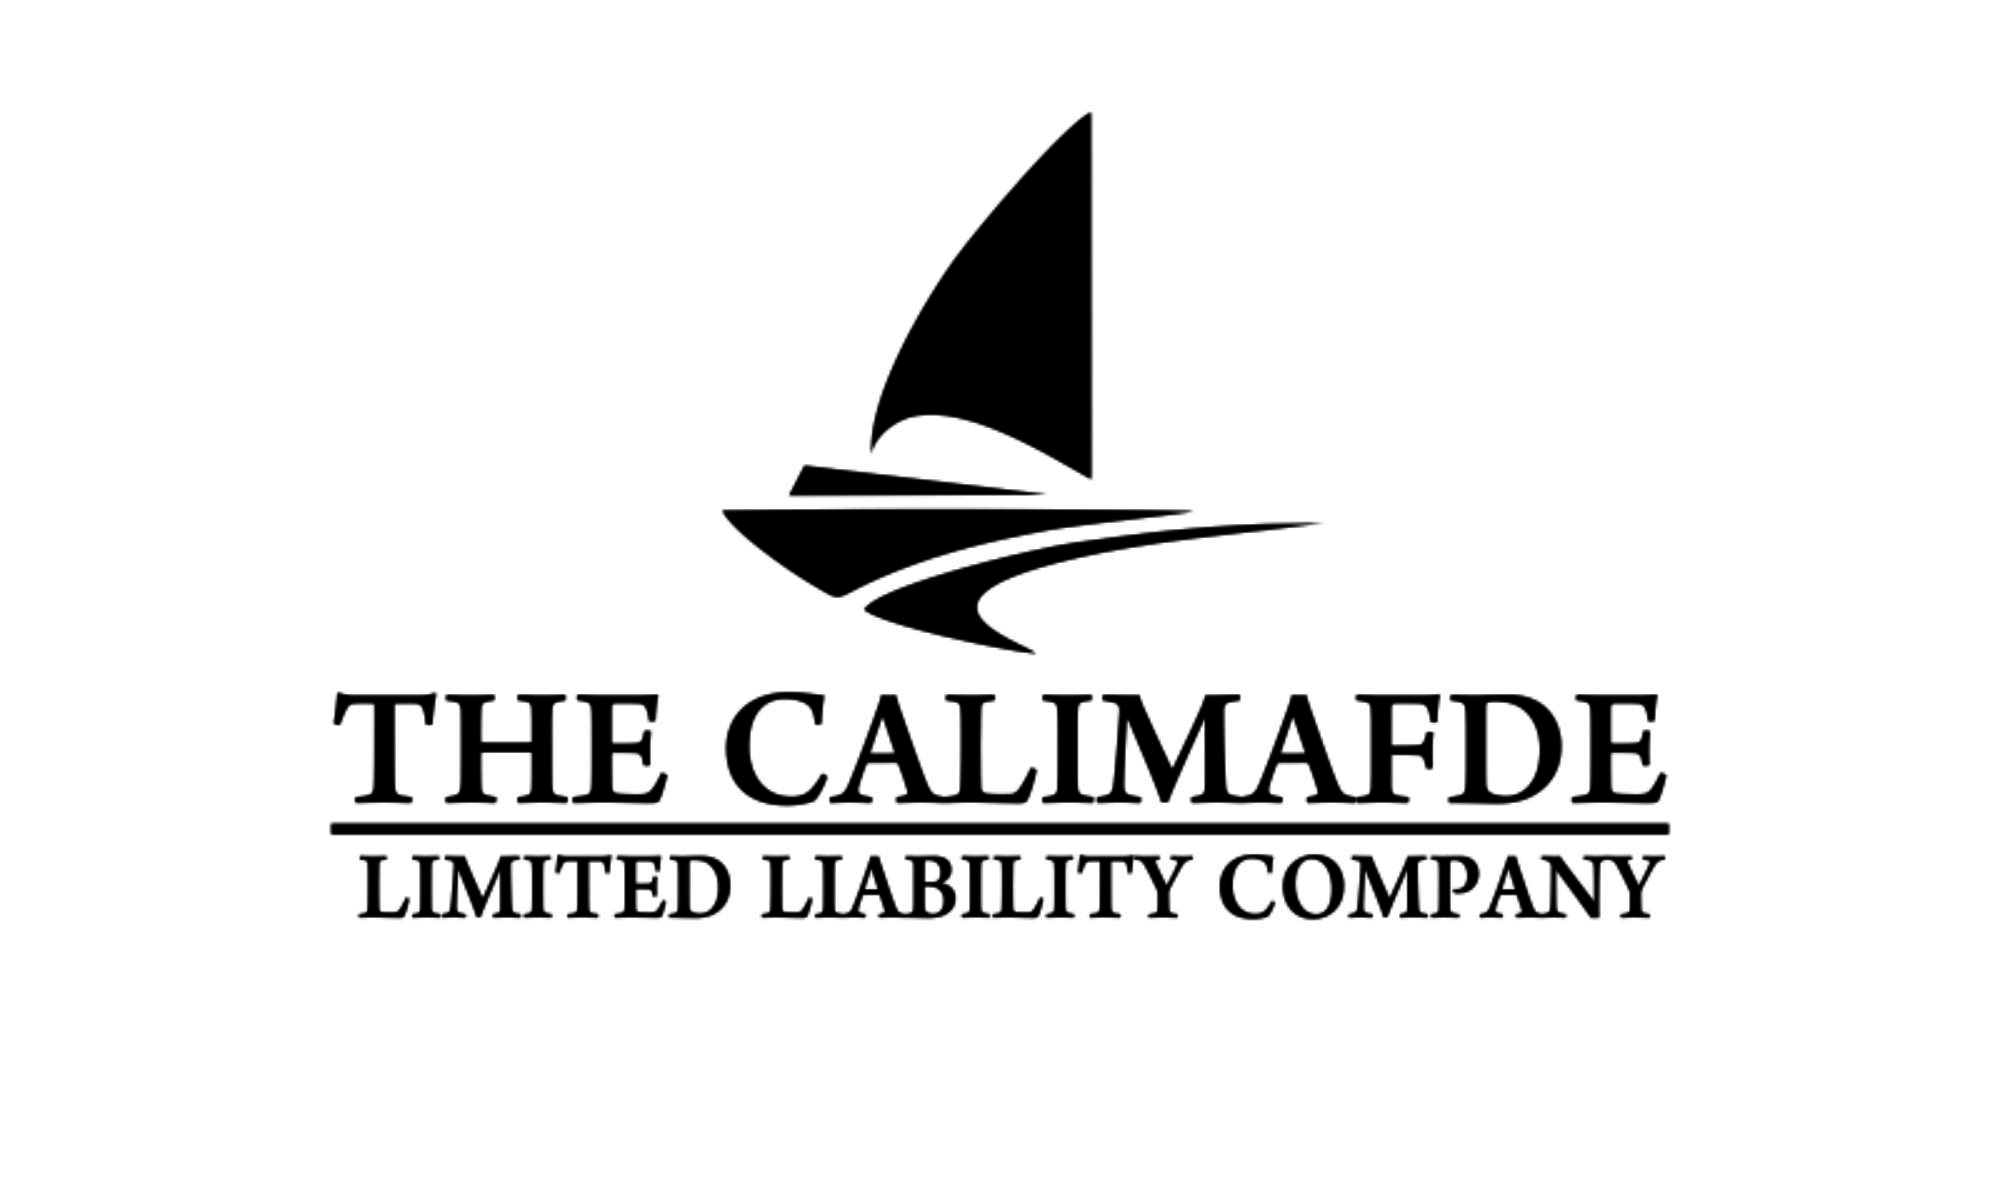 The Calimafde Limited Liability Company